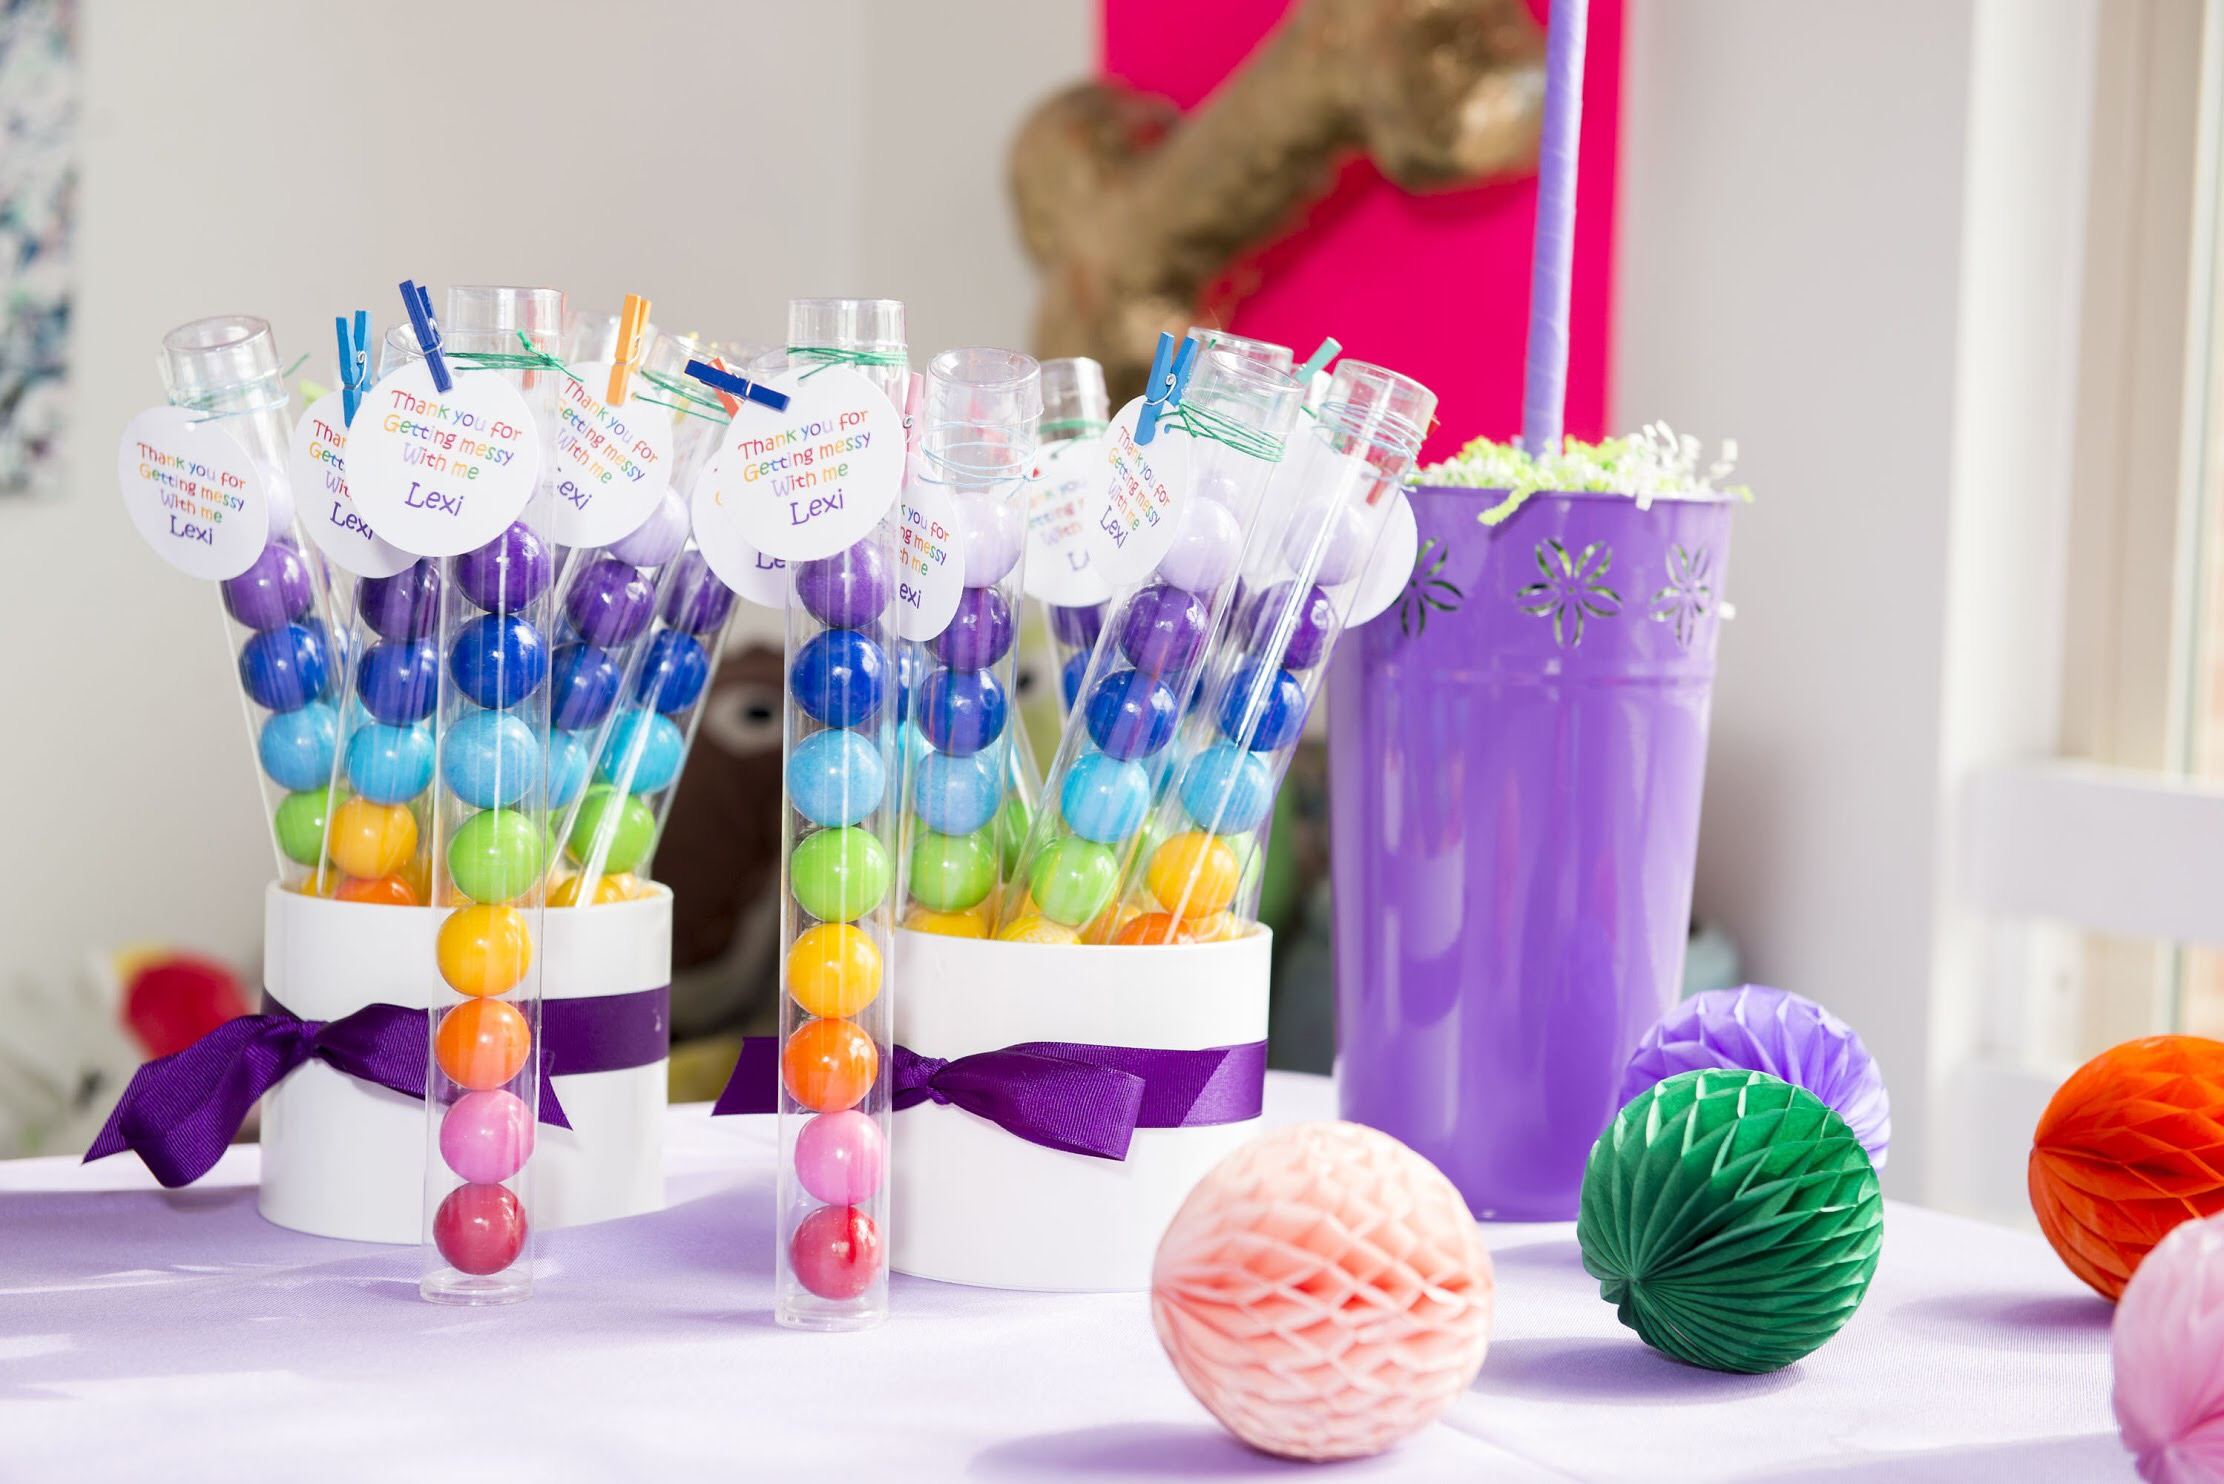 Cute gum ball tubes make a a great party favor for an art themed birthday party for kids. Click to see all the art themed party ideas on Mint Event Design www.minteventdesign.com #kidsparty #kidspartyideas #birthdaypartyideas #artparty #rainbowparty